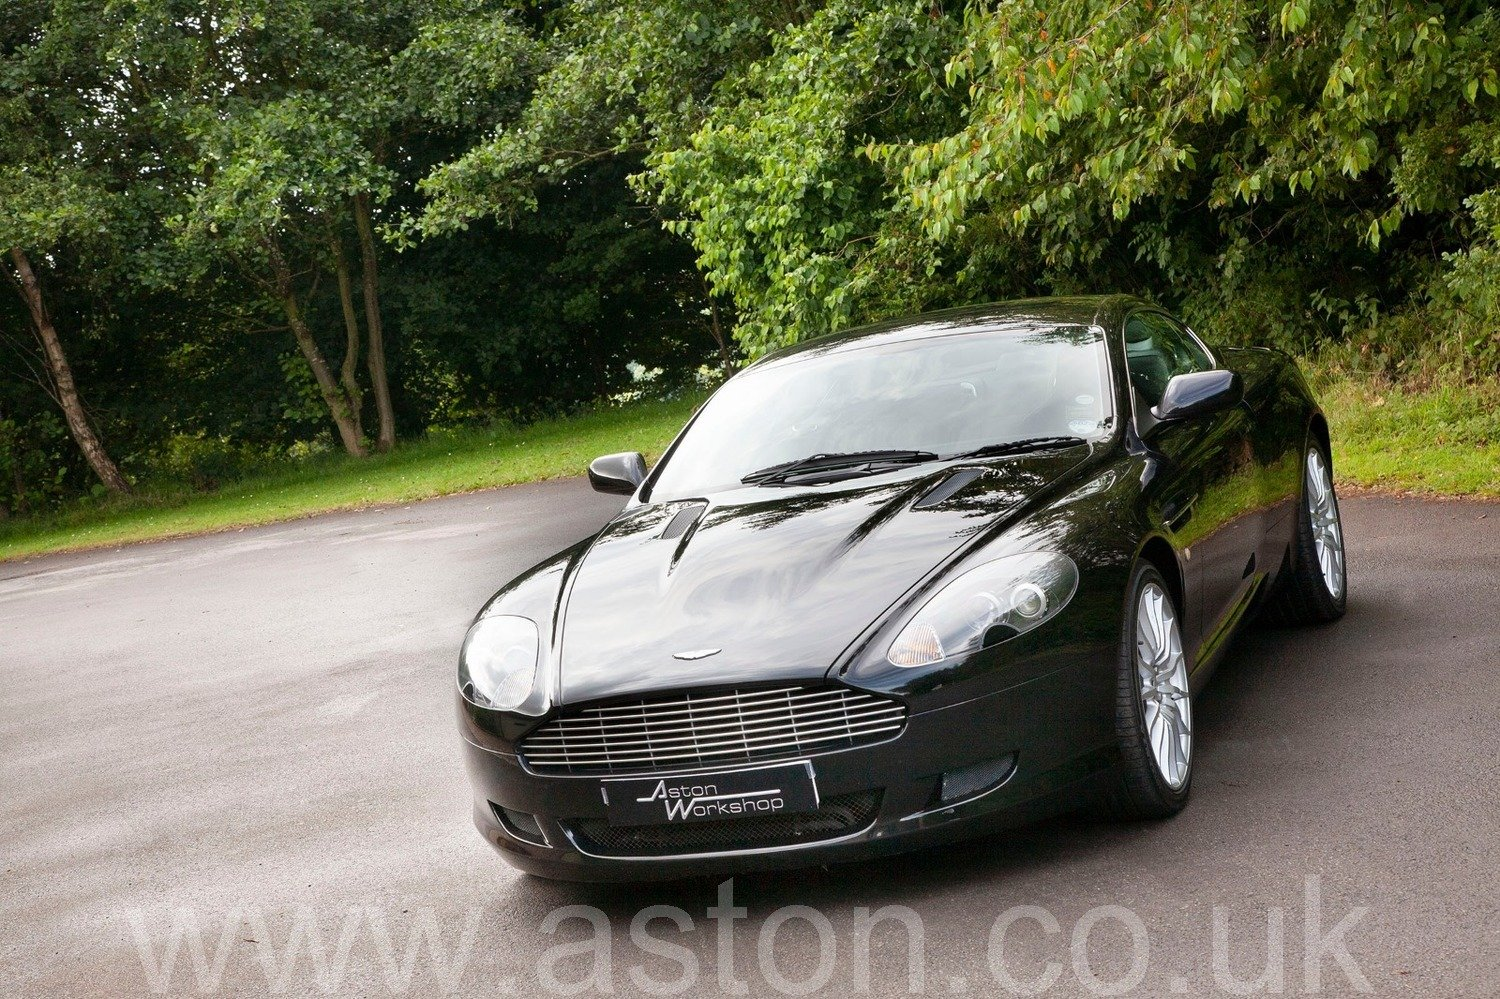 2005 Semi-Automatic DB9 Coupe For Sale (picture 1 of 6)